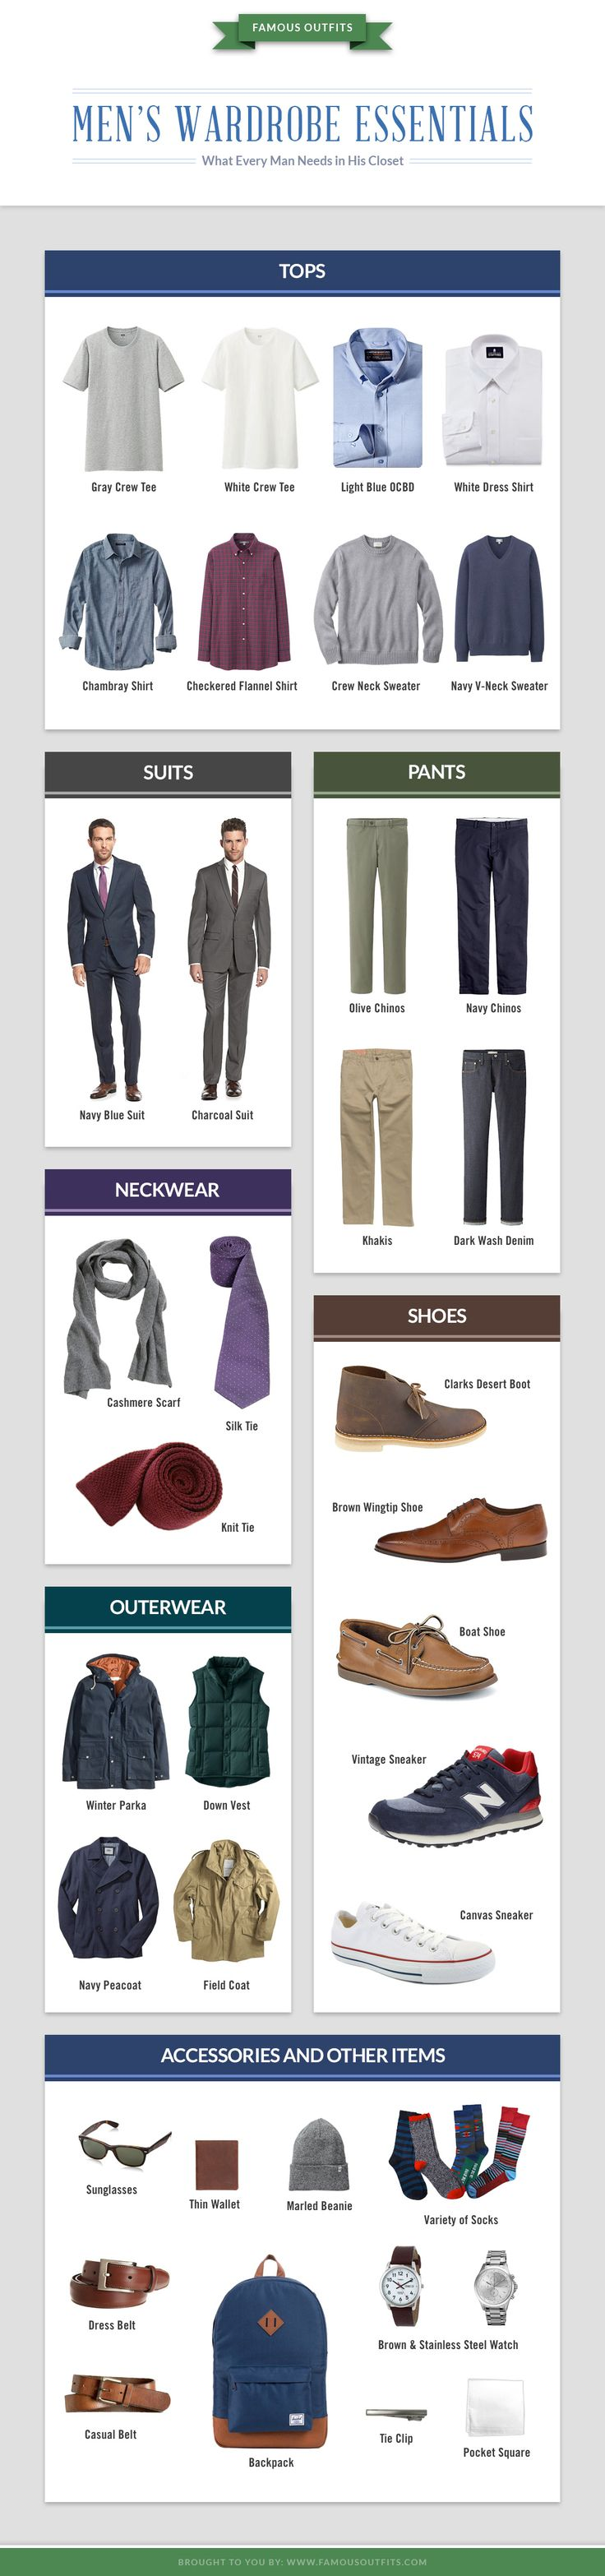 Wanting to take your wardrobe to another level? Look no further than the Men's Wardrobe Essentials from Famous Outfits. It's a handsomely designed visual guide that shows the clothing and accessory essentials that every gentleman should have in his closet.